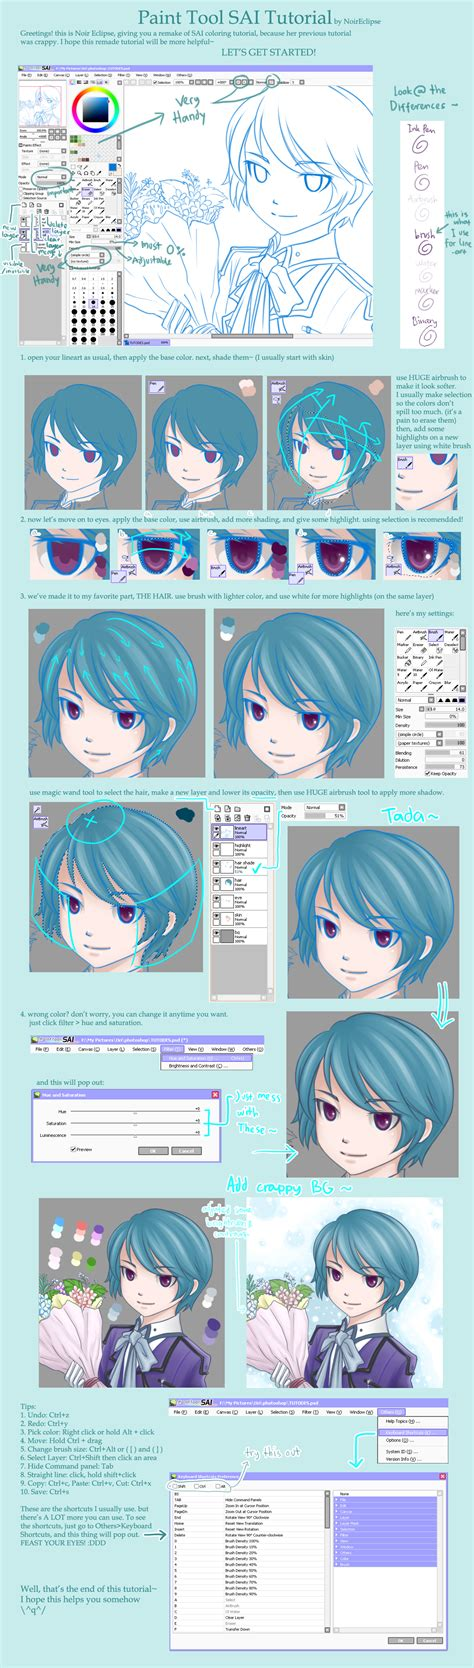 paint tool sai tutorial italiano paint tool sai tutorial by noireclipse on deviantart